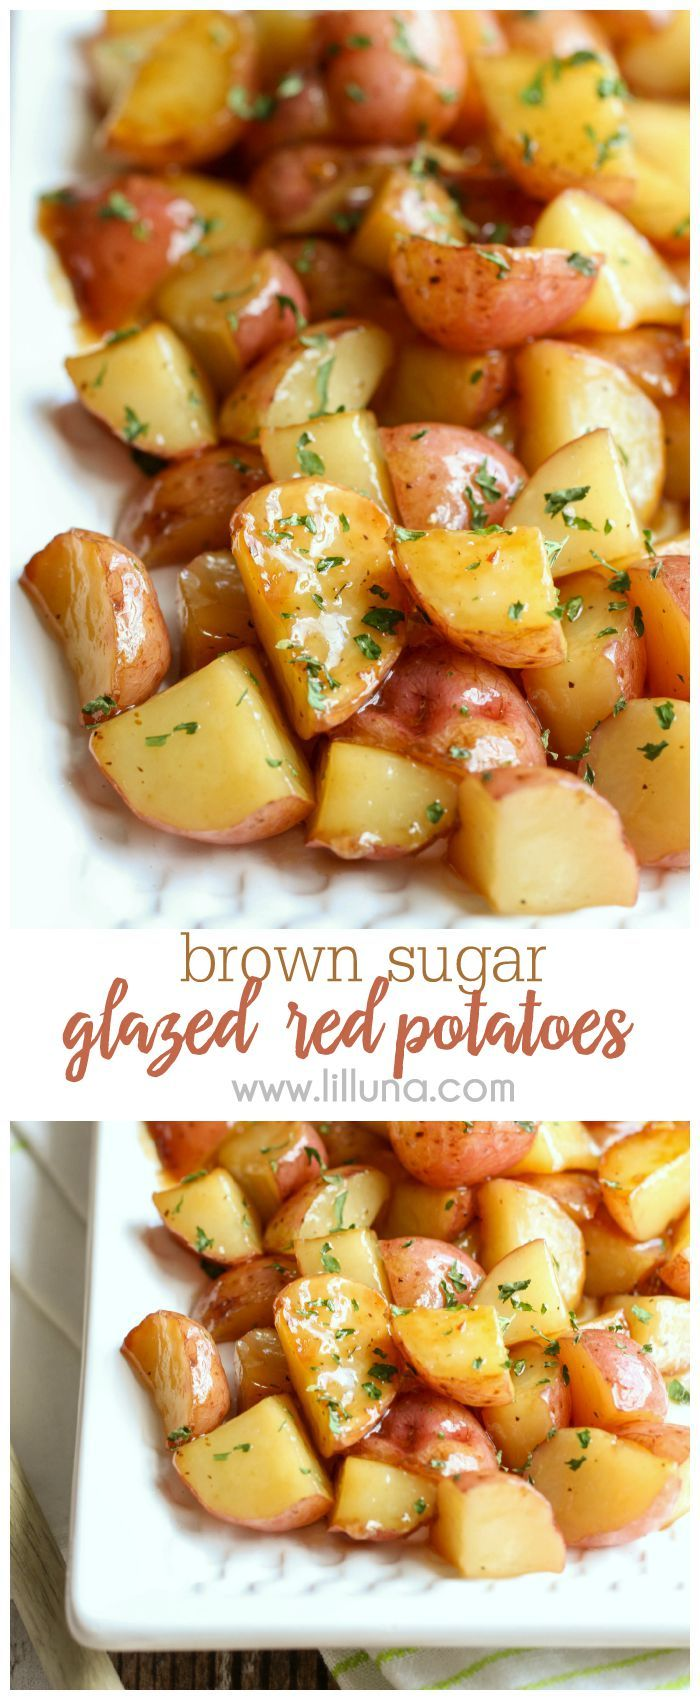 Brown Sugar Glazed Red Potatoes